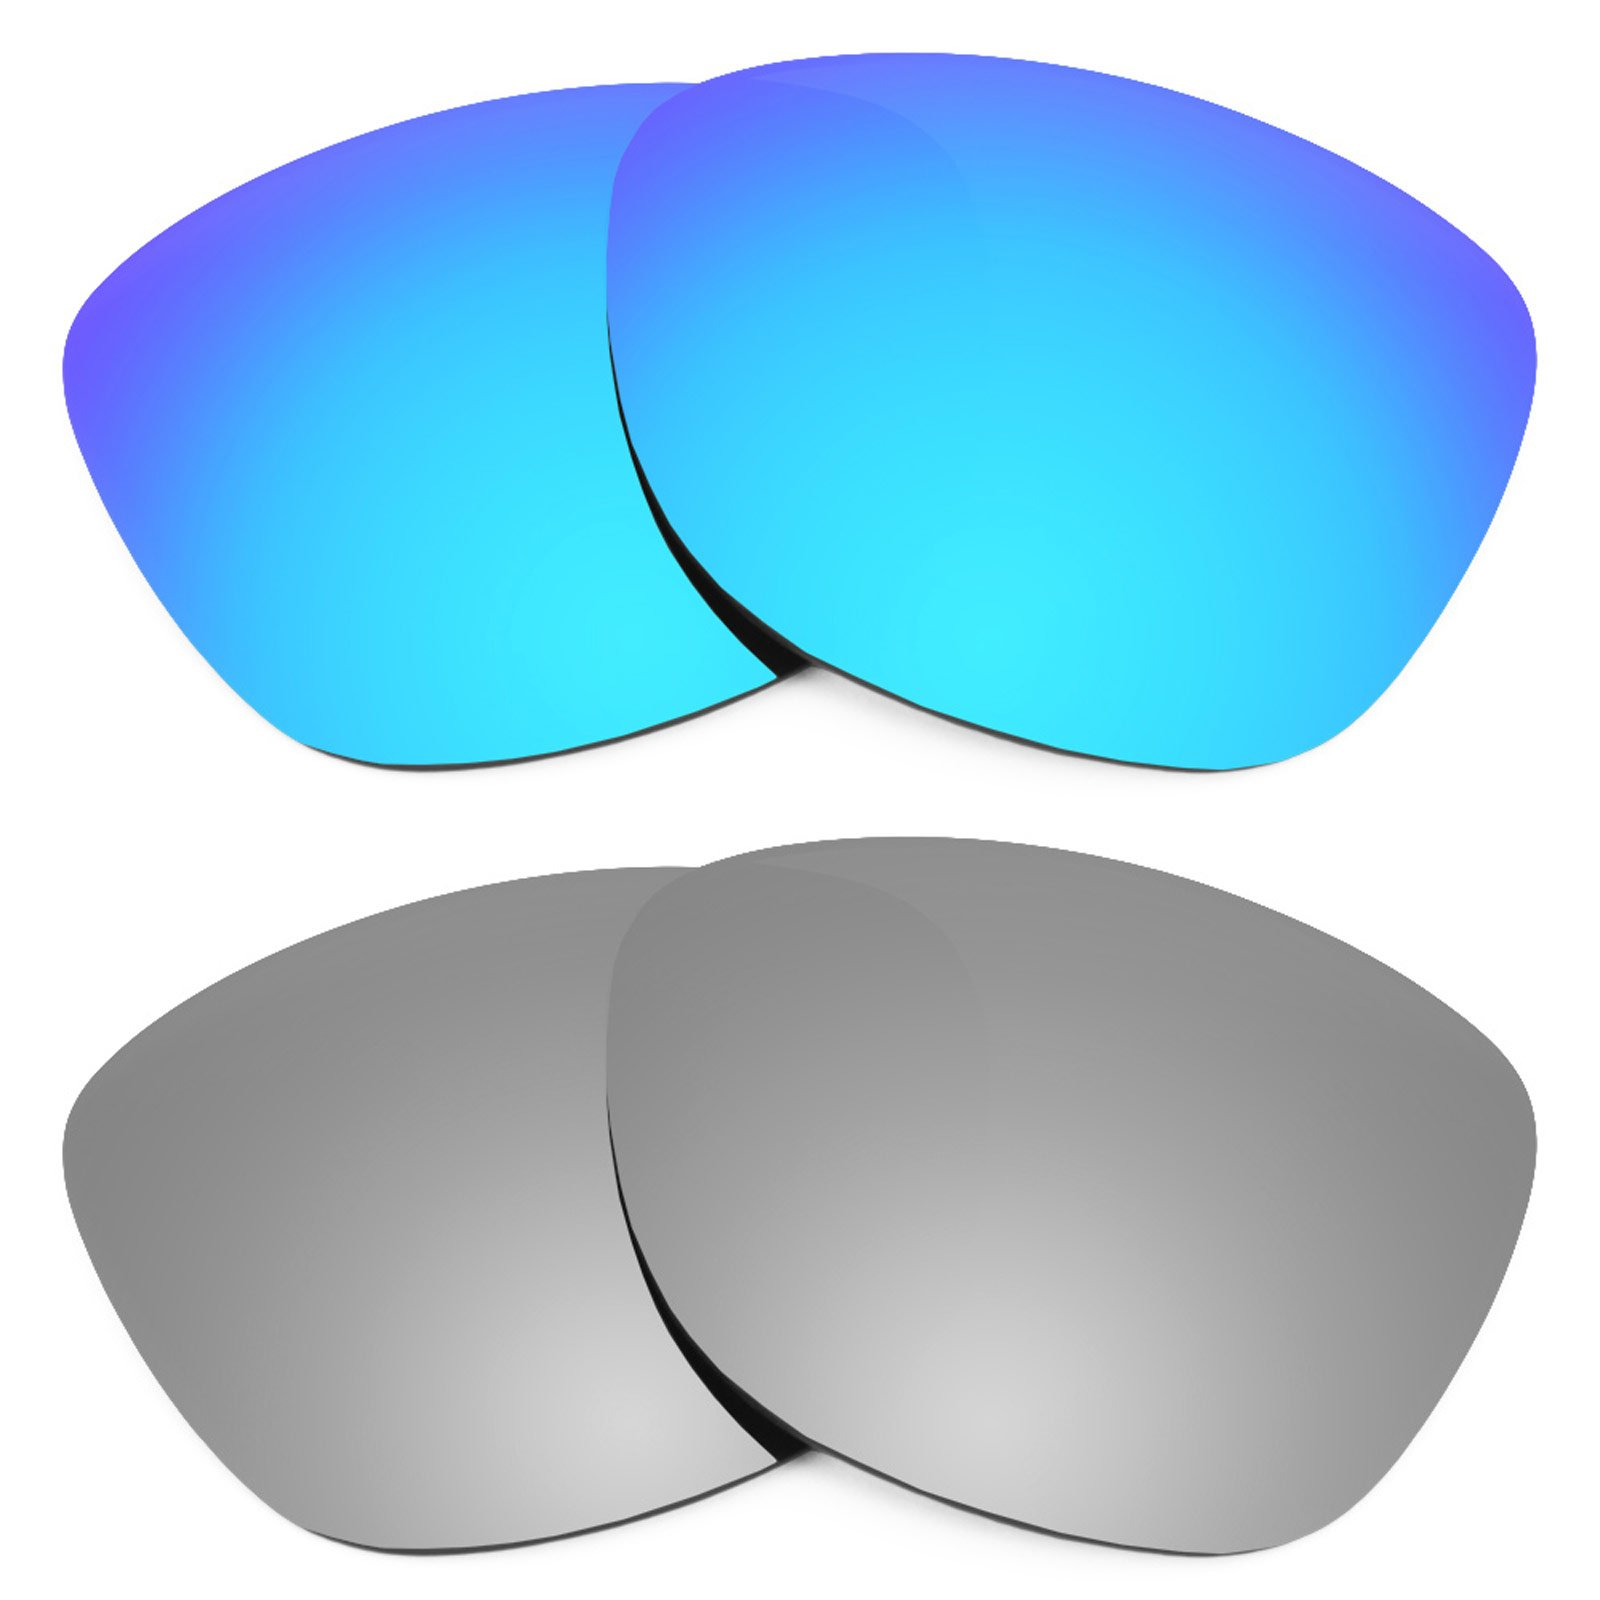 Revant Replacement Lenses for Oakley Frogskins 2 Pair Combo Pack K004 by Revant (Image #1)